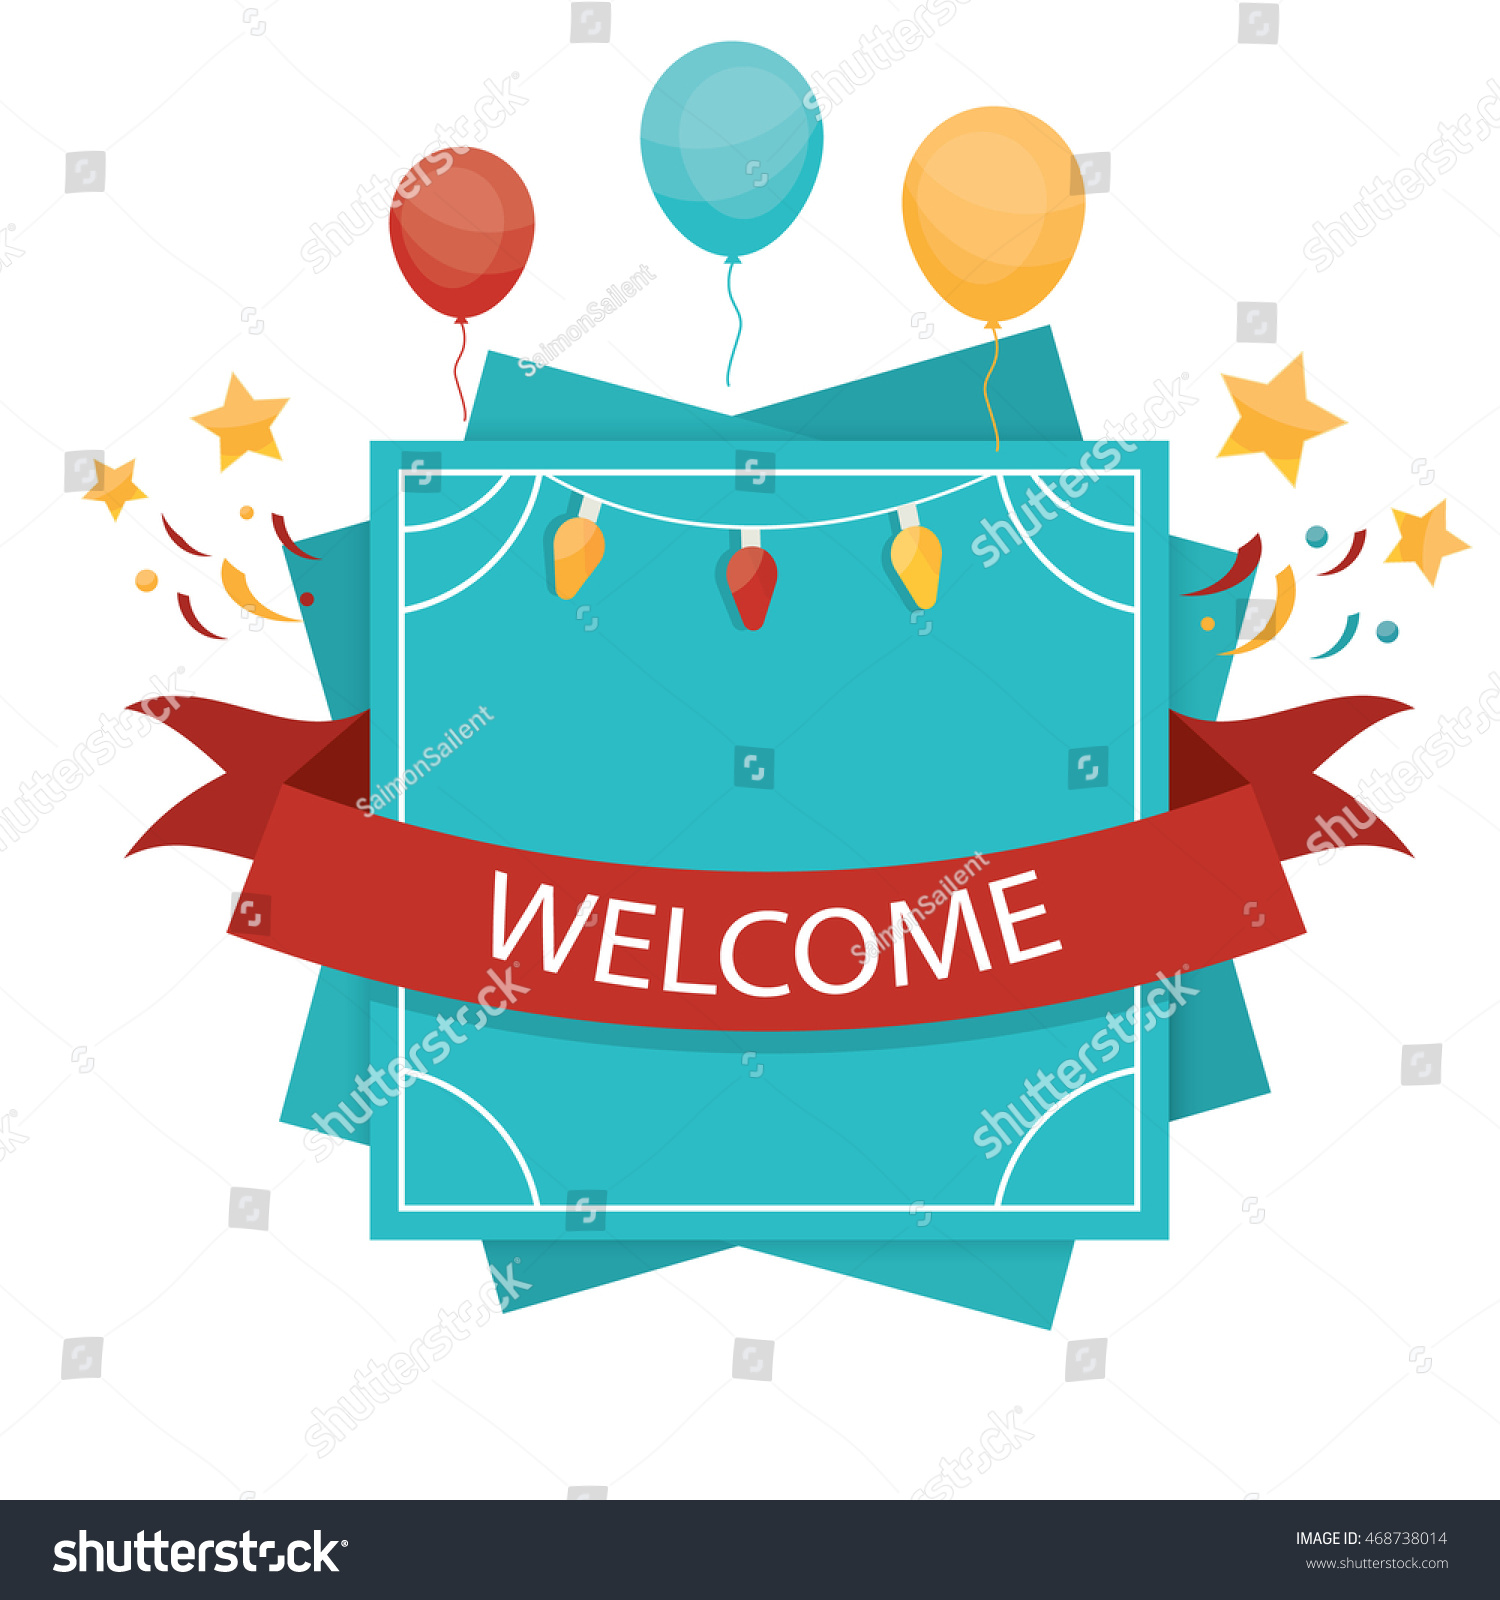 Illustration welcome design elements label banner stock vector illustration of welcome design elements label banner and emblem of celebration for template pronofoot35fo Image collections